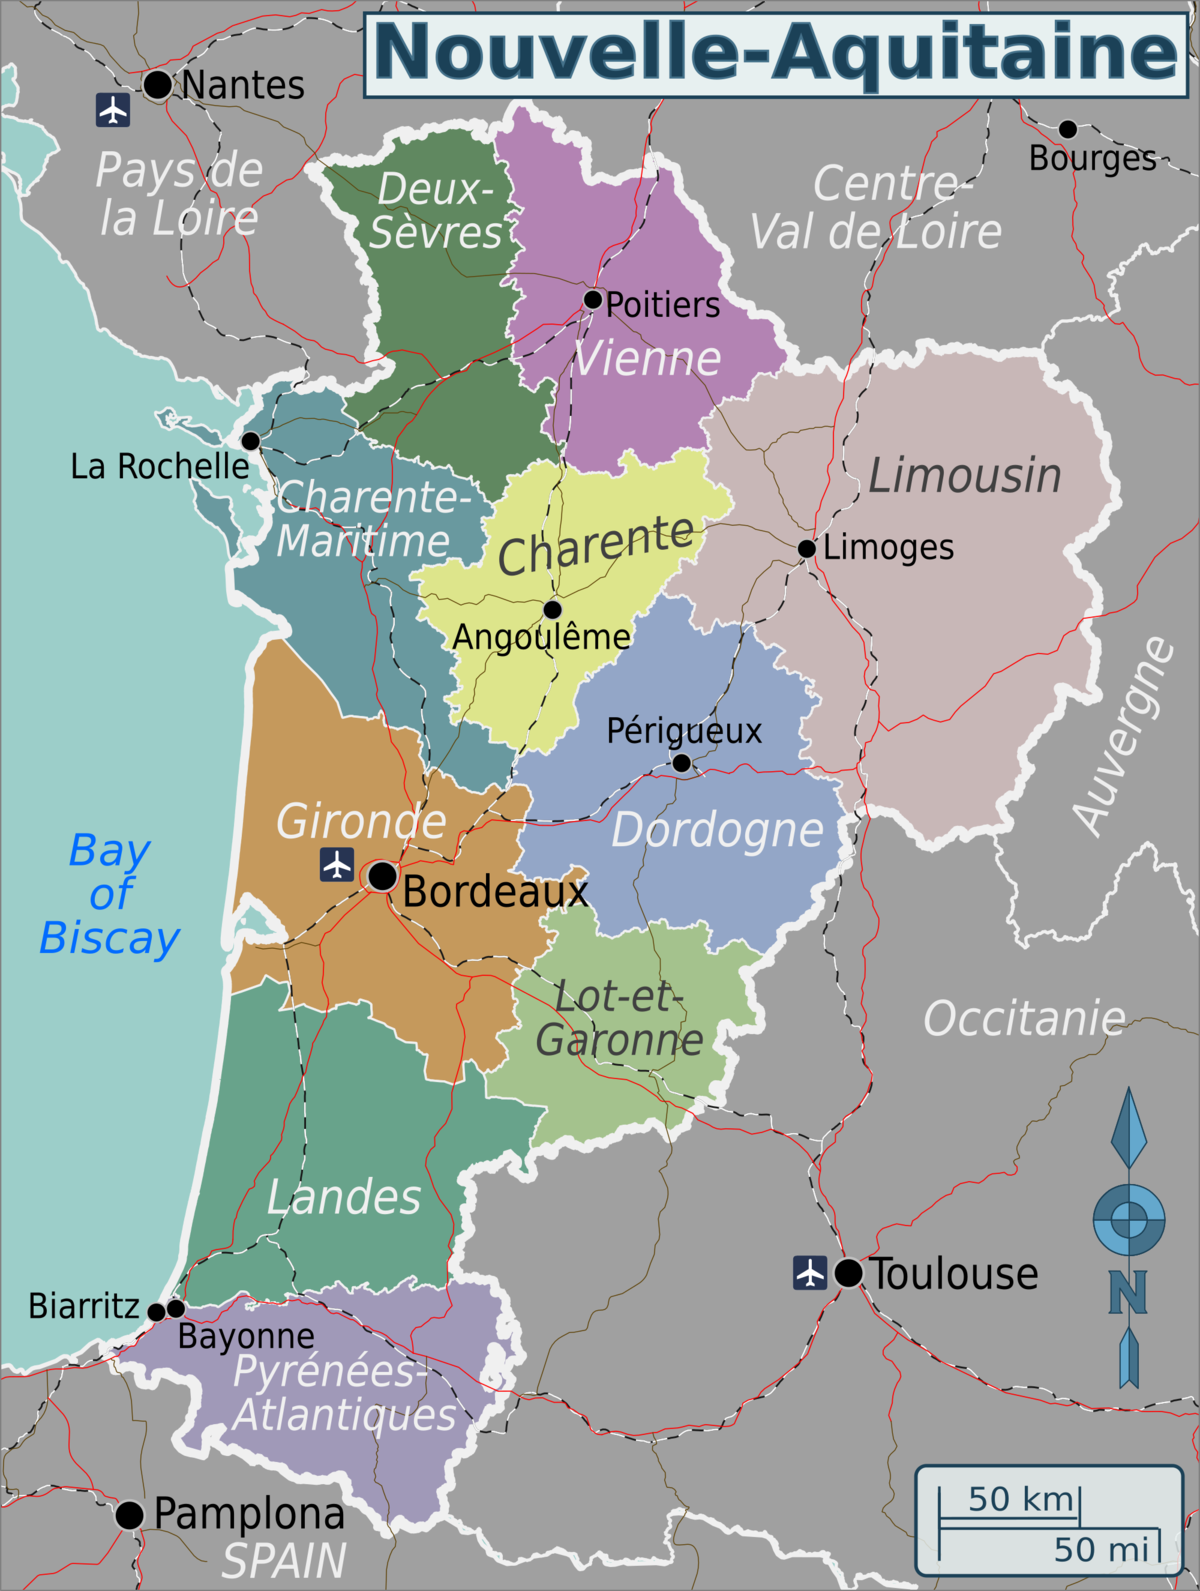 NouvelleAquitaine Travel guide at Wikivoyage